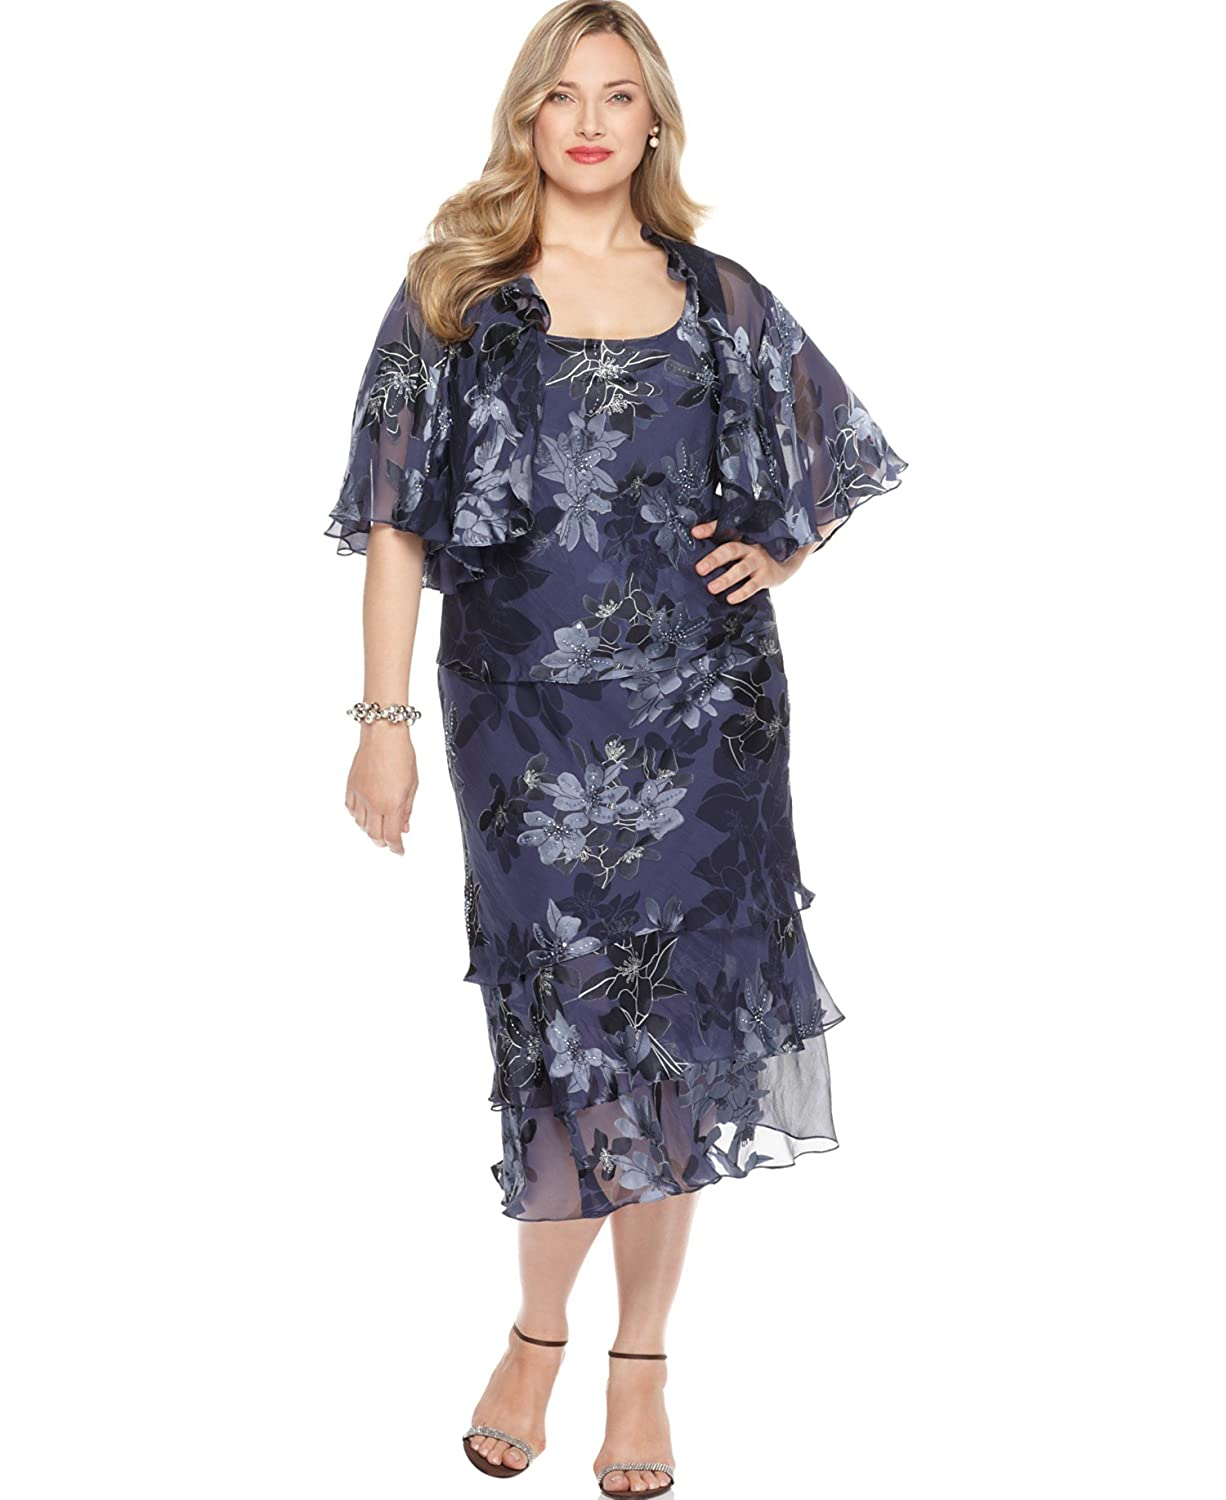 Plus Size Evening Dresses for Women